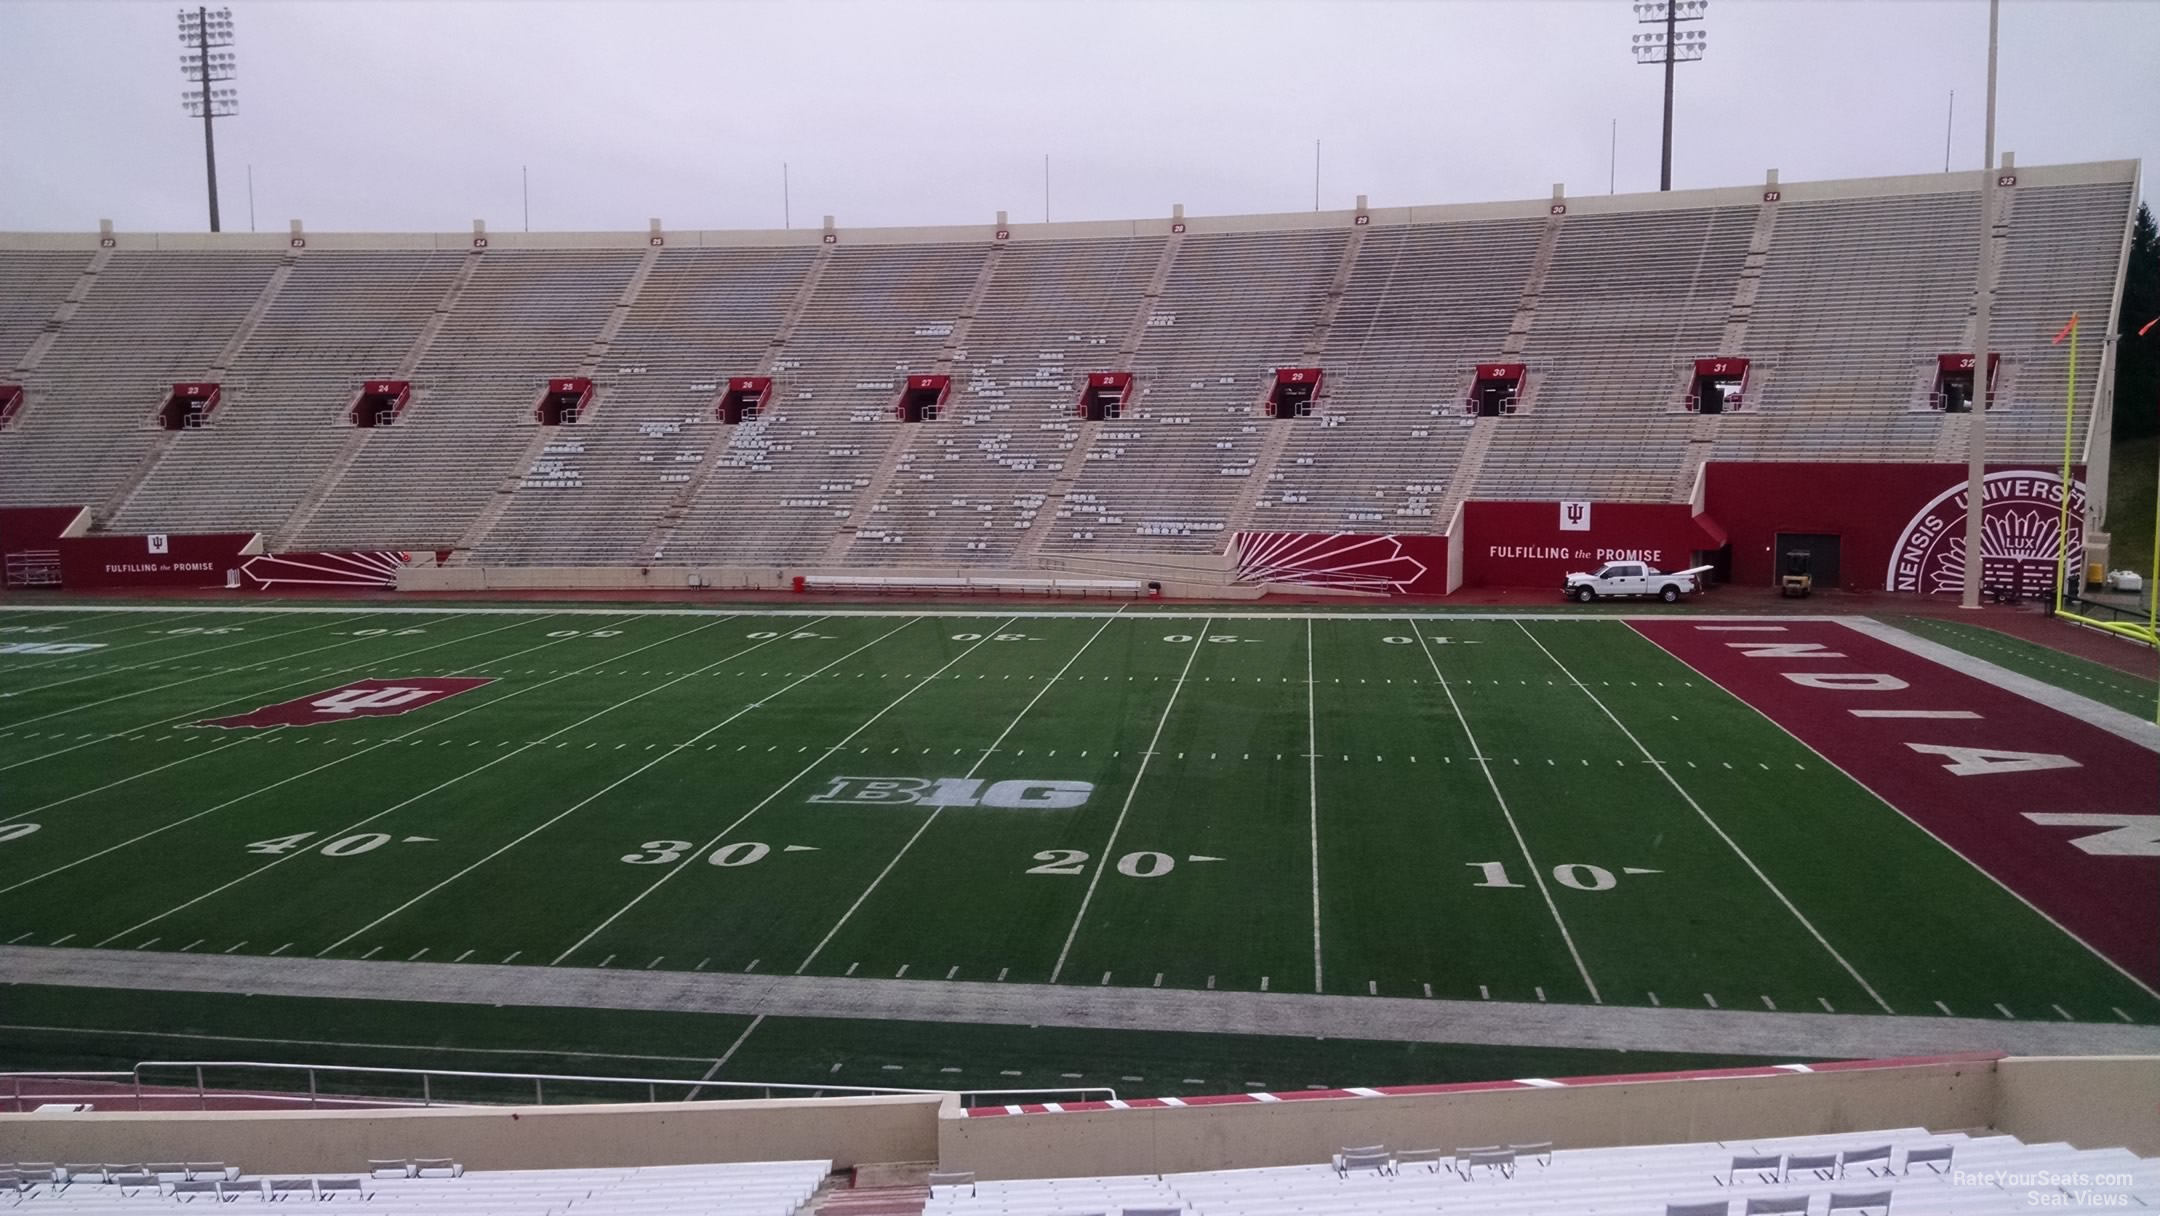 Seat View for Memorial Stadium - IN Section 4, Row 30